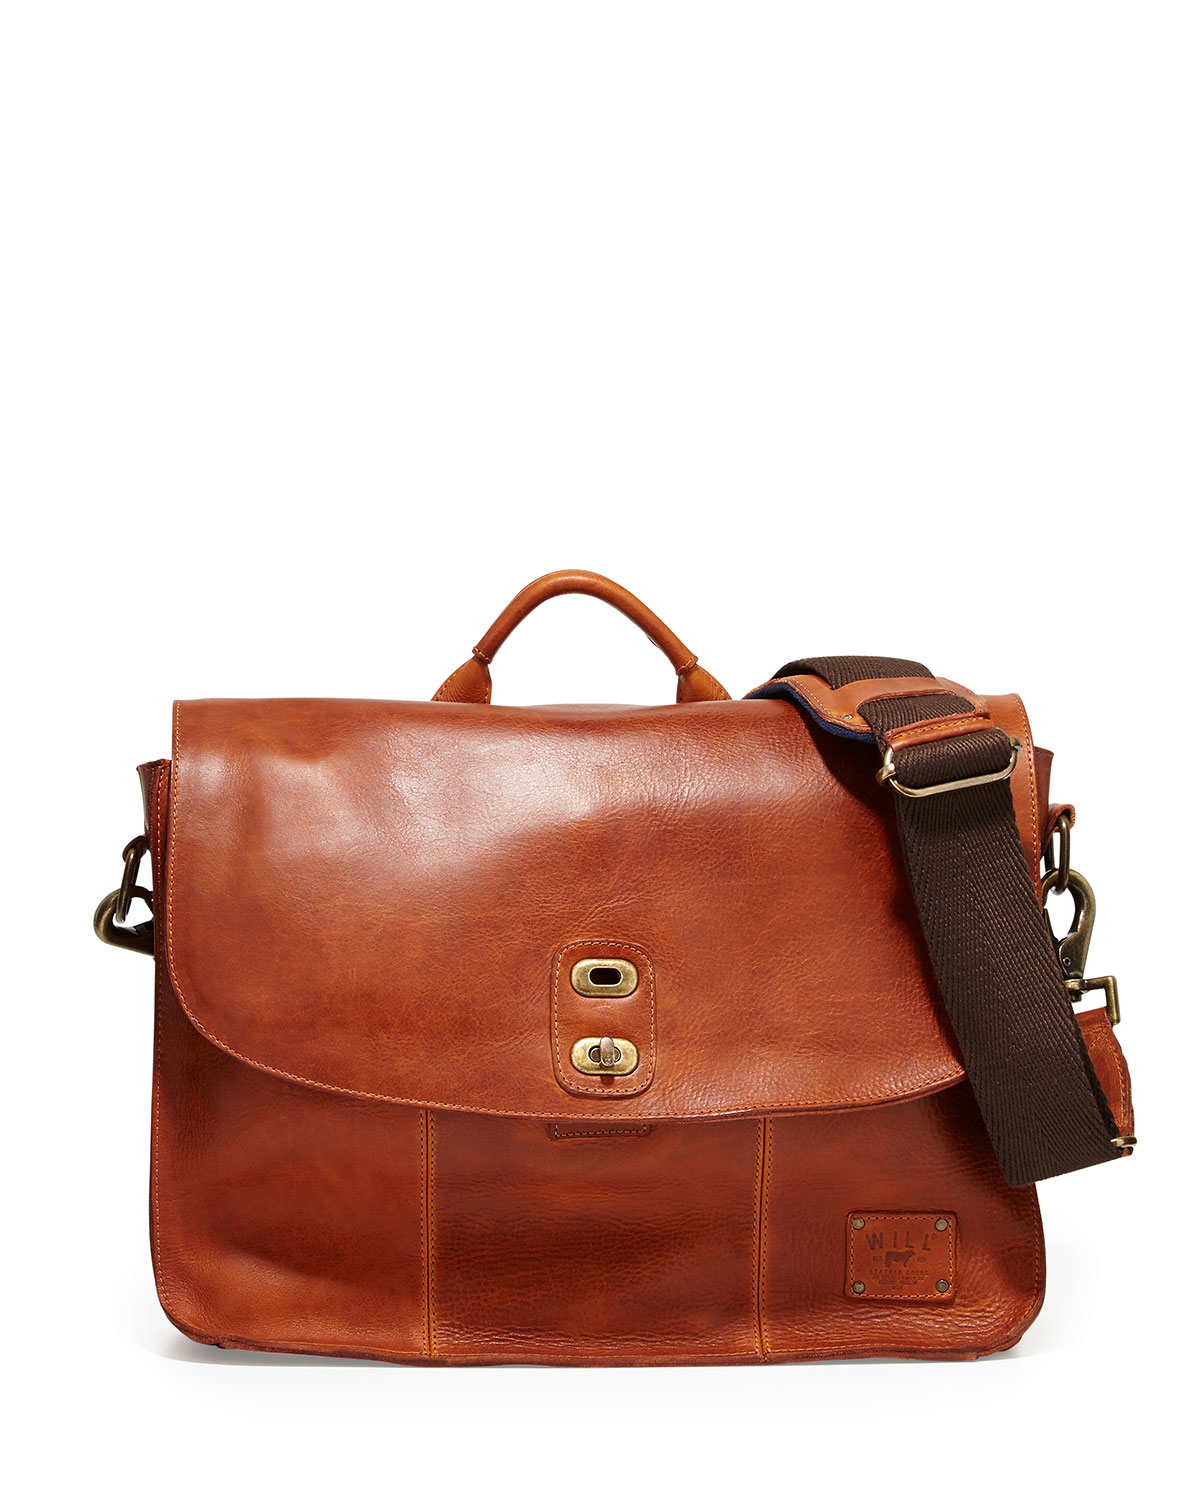 Will Leather Goods KENT MESSENGER   Neiman Marcus 258932a33f